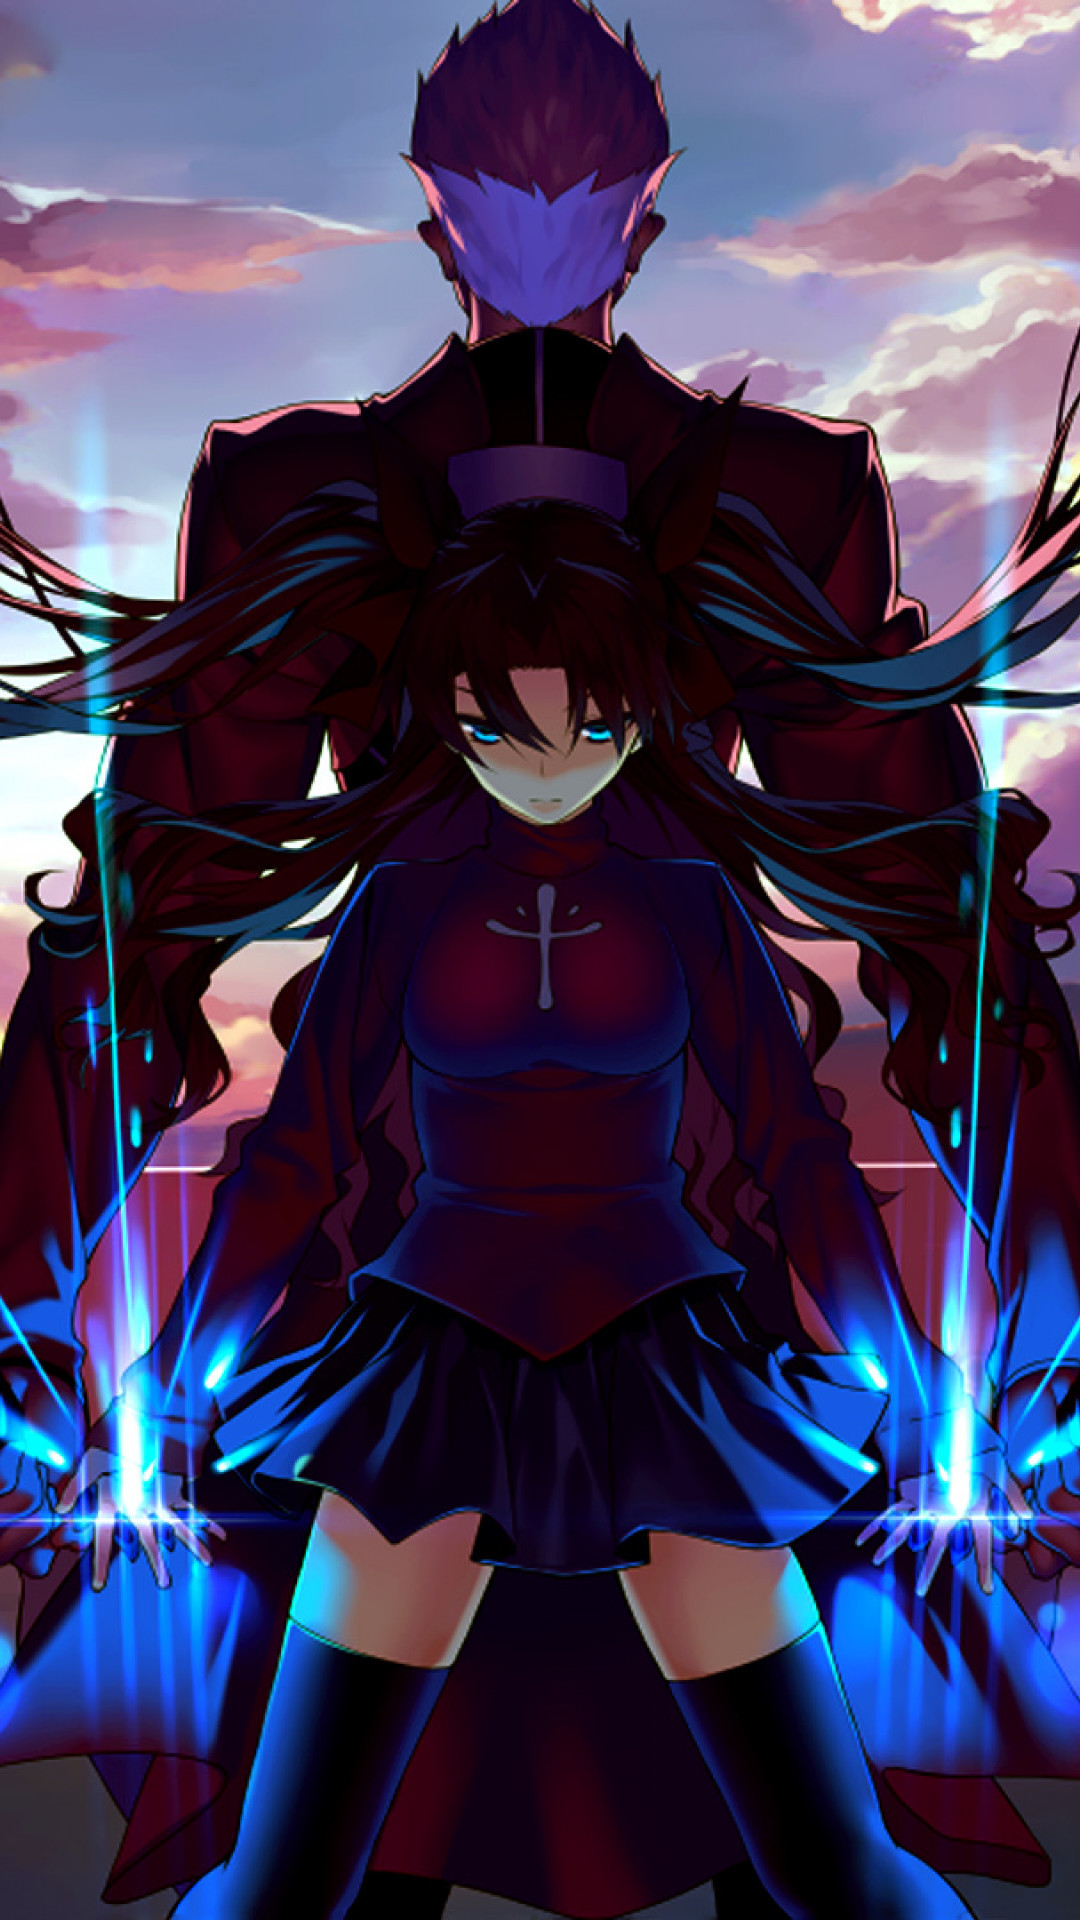 Fate stay night iphone wallpaper 56 images - Fate stay night wallpaper ...